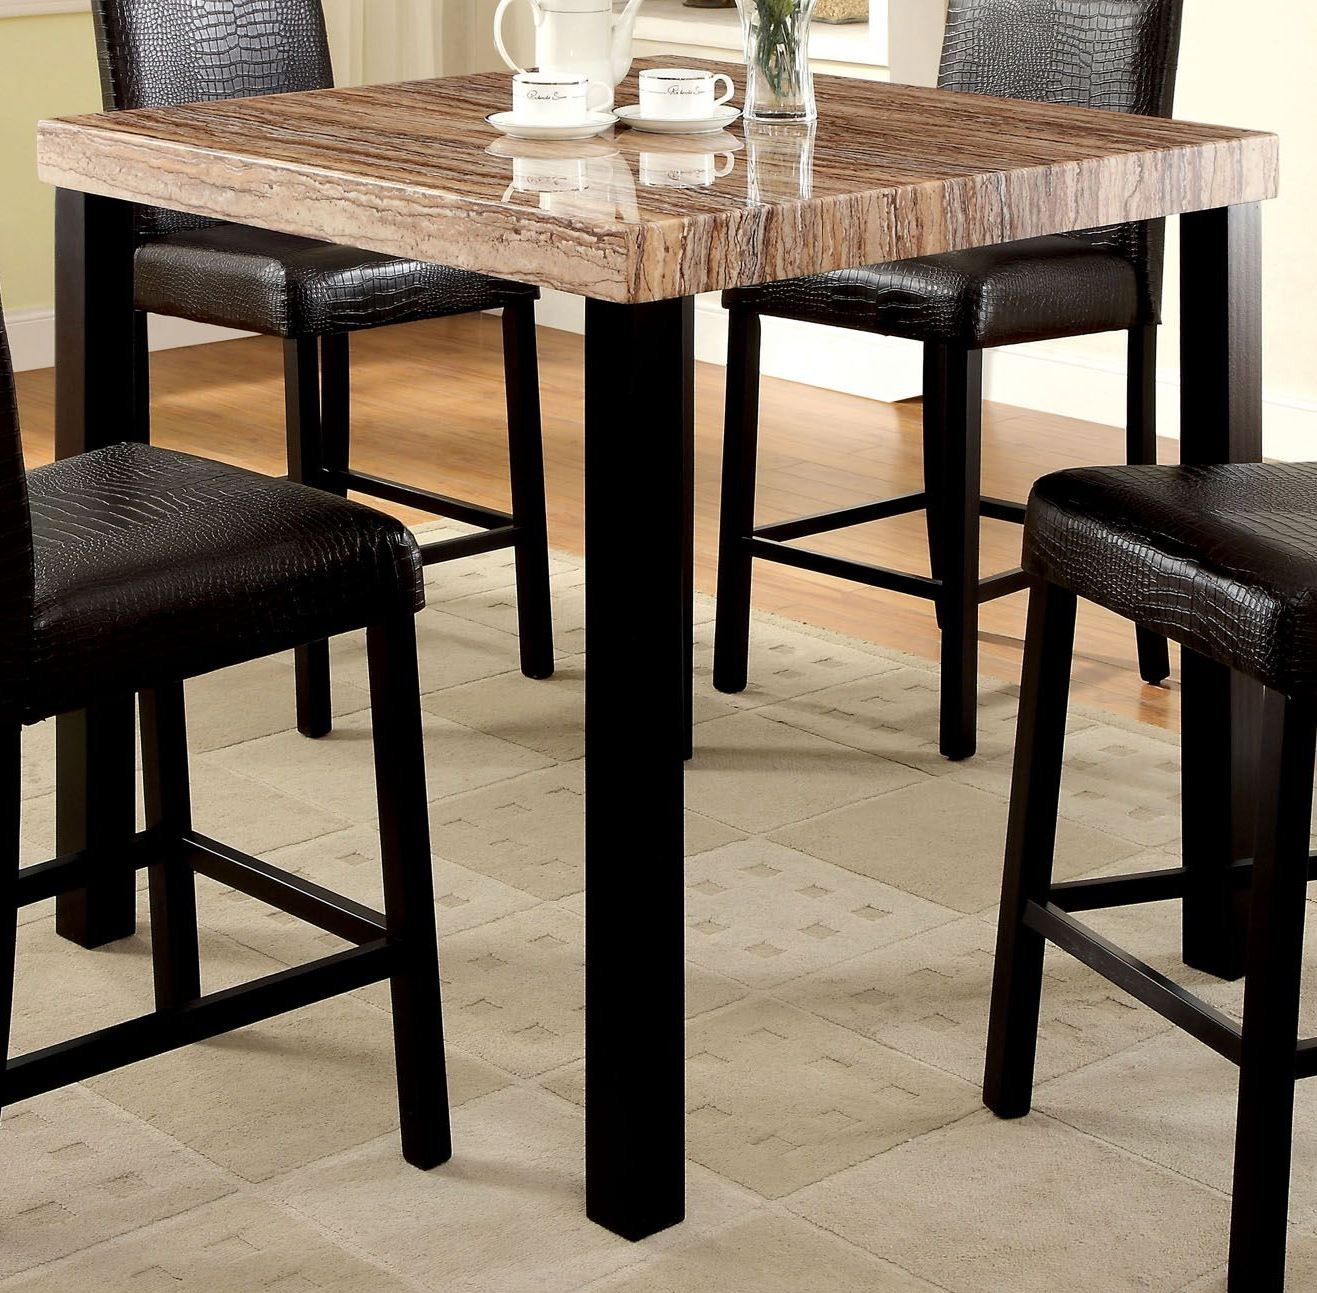 Tall Breakfast Table: Rockham II Black Faux Marble Top Square Counter Height Leg